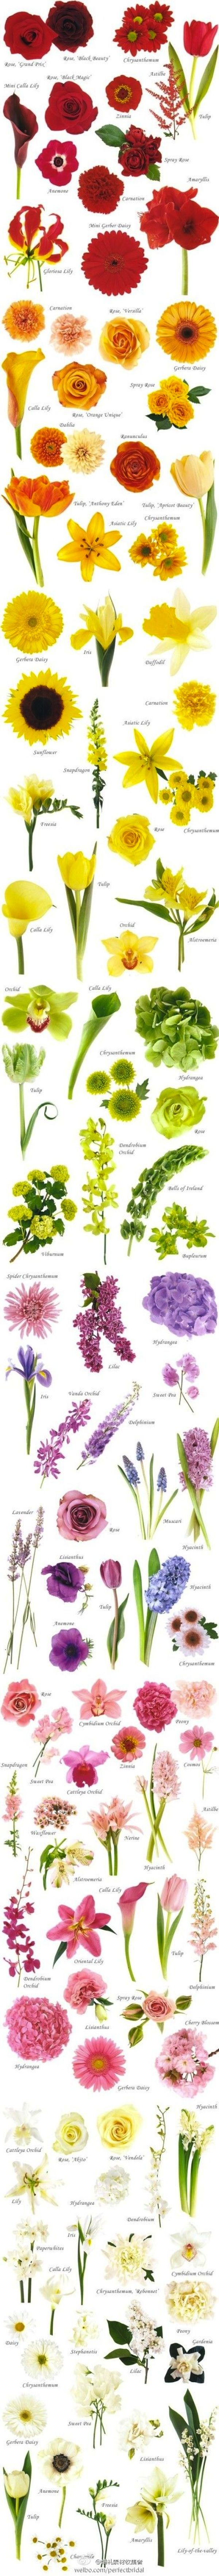 Don't know your carnations from your chrysanthemums?....♥♥....  Let this fabulous guide help you to identify your favourite flowers, introduce you to new ones and inspire you to put together your dream bouquet and wedding flower arrangements. If you're feeling ready to approach a florist, pop over to the Flowers, Decor and Styling section of our Directory to ...